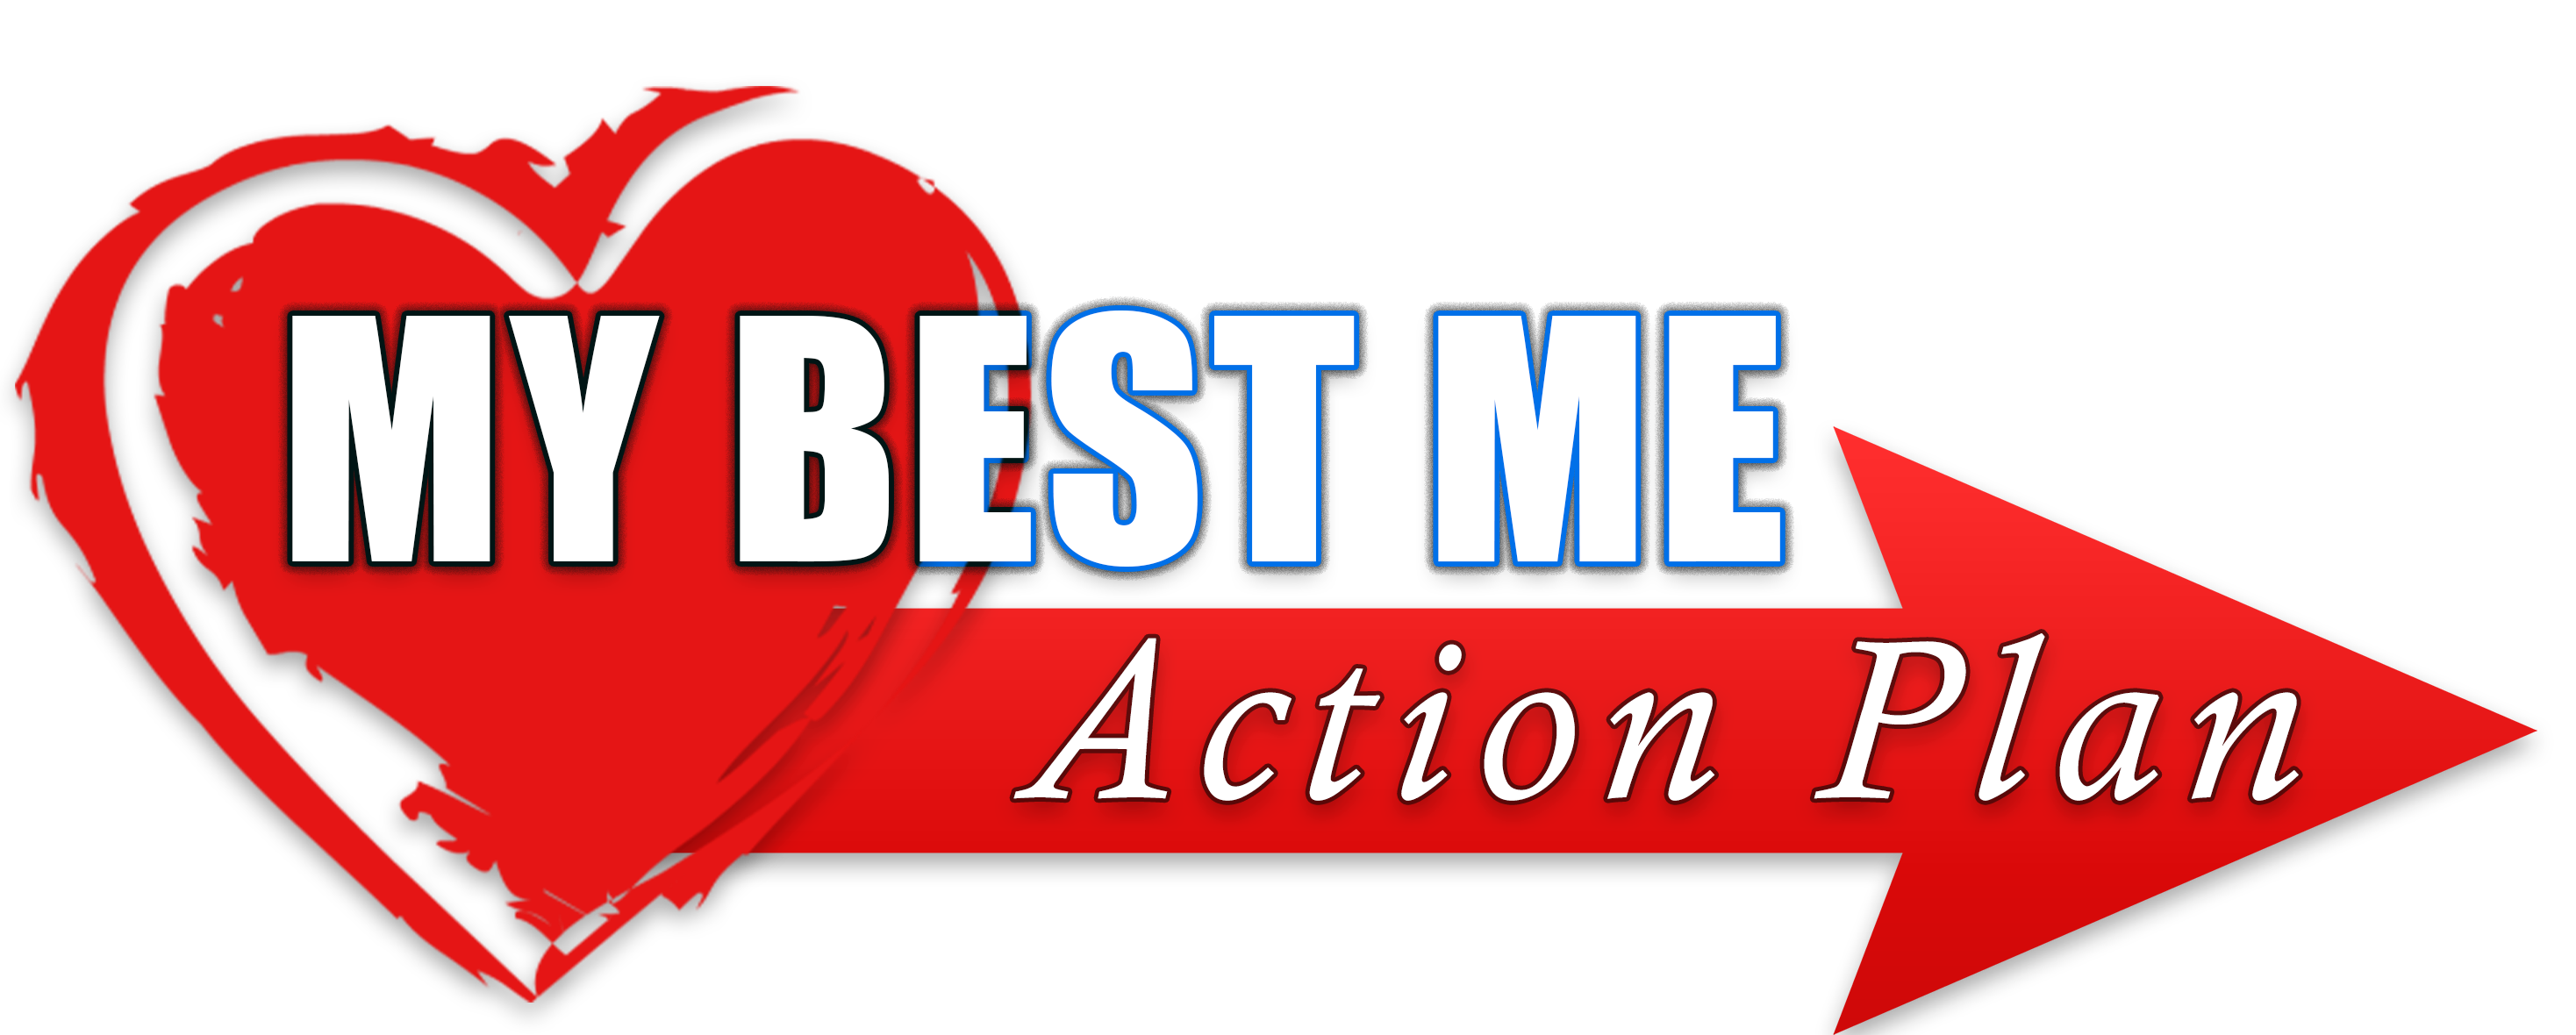 Welcome to My Best Me Action Plan 5